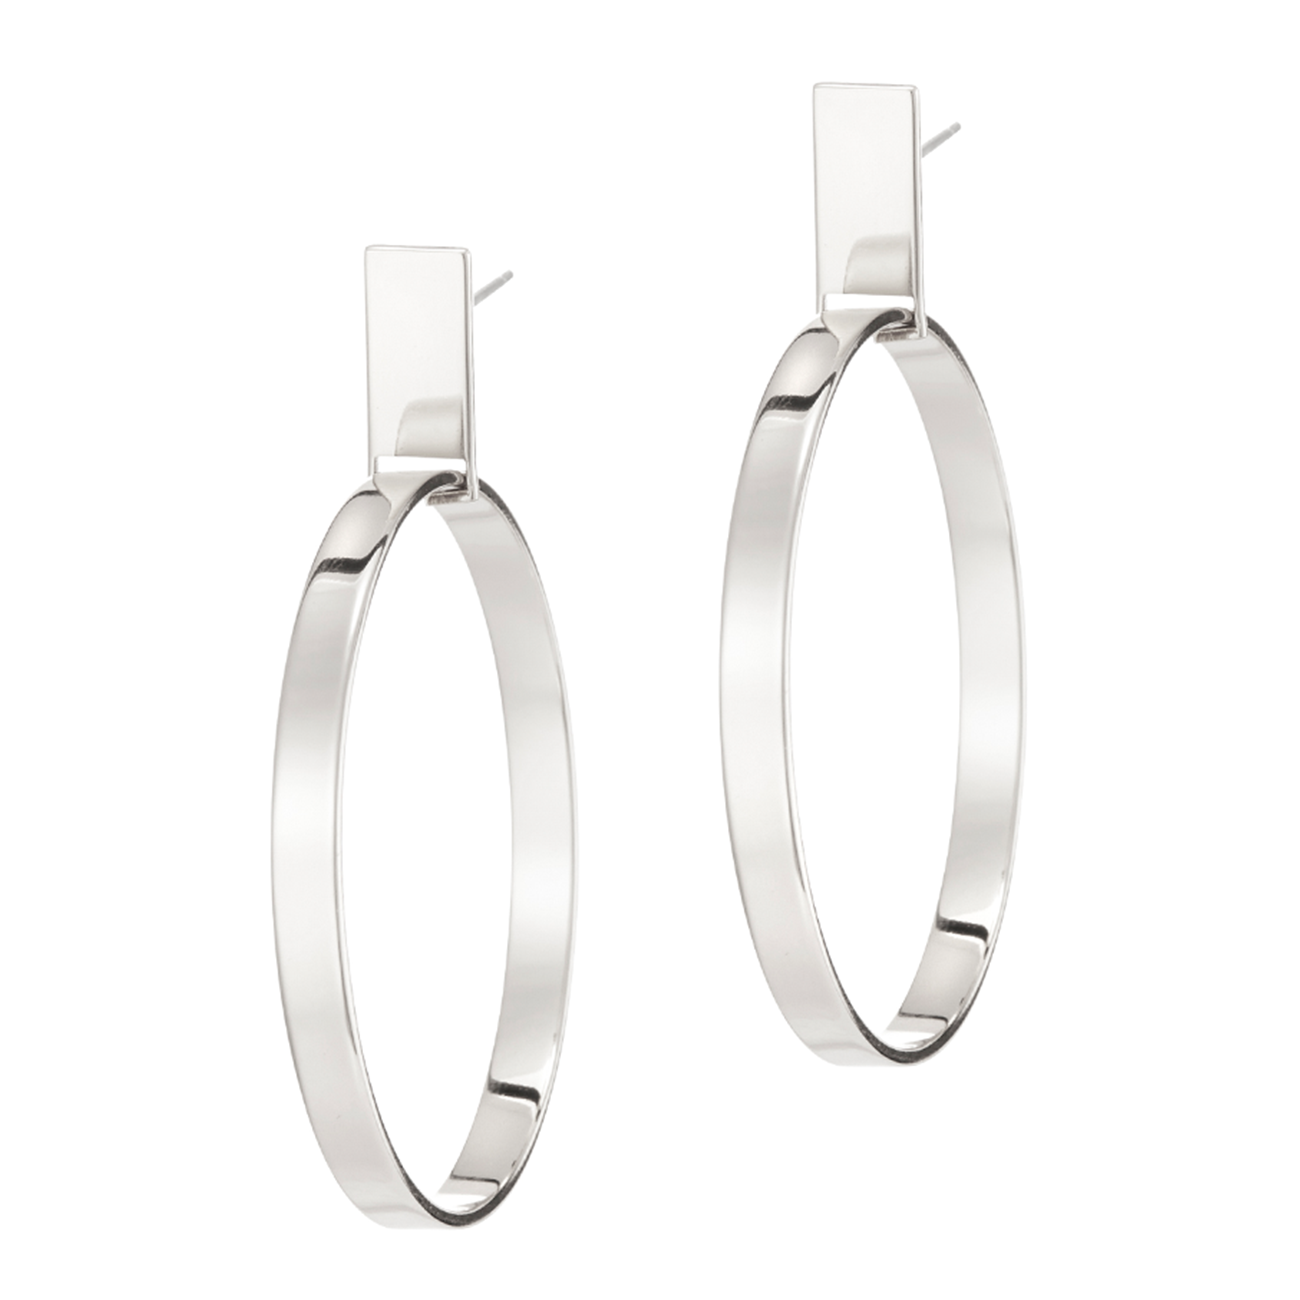 Silver rectangular post Agnes Hoops - Medium earrings by JENNY BIRD